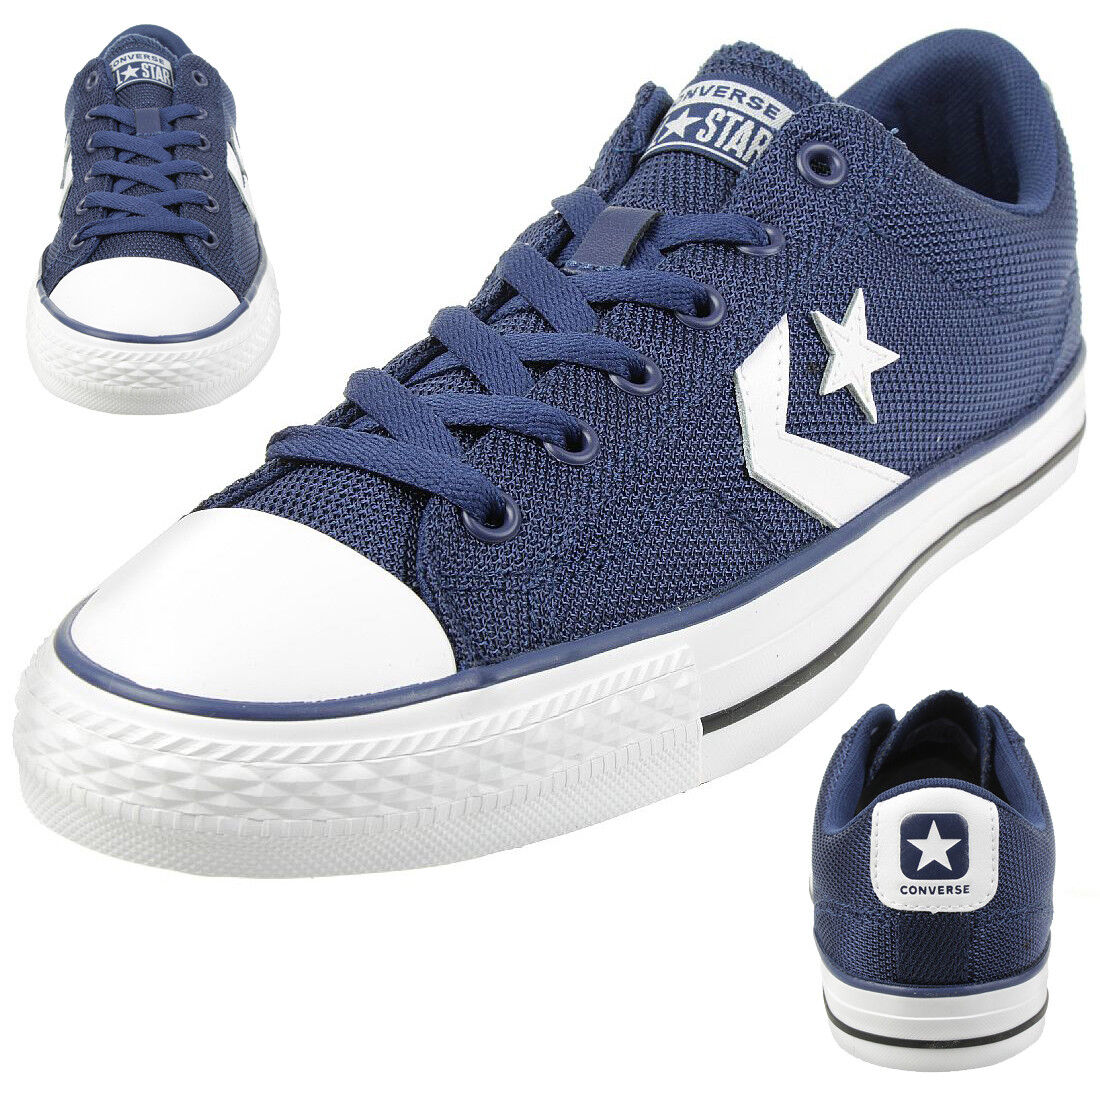 Converse Star Player OX SHOES TRAINERS 160582c Blue Scarpe classiche da uomo